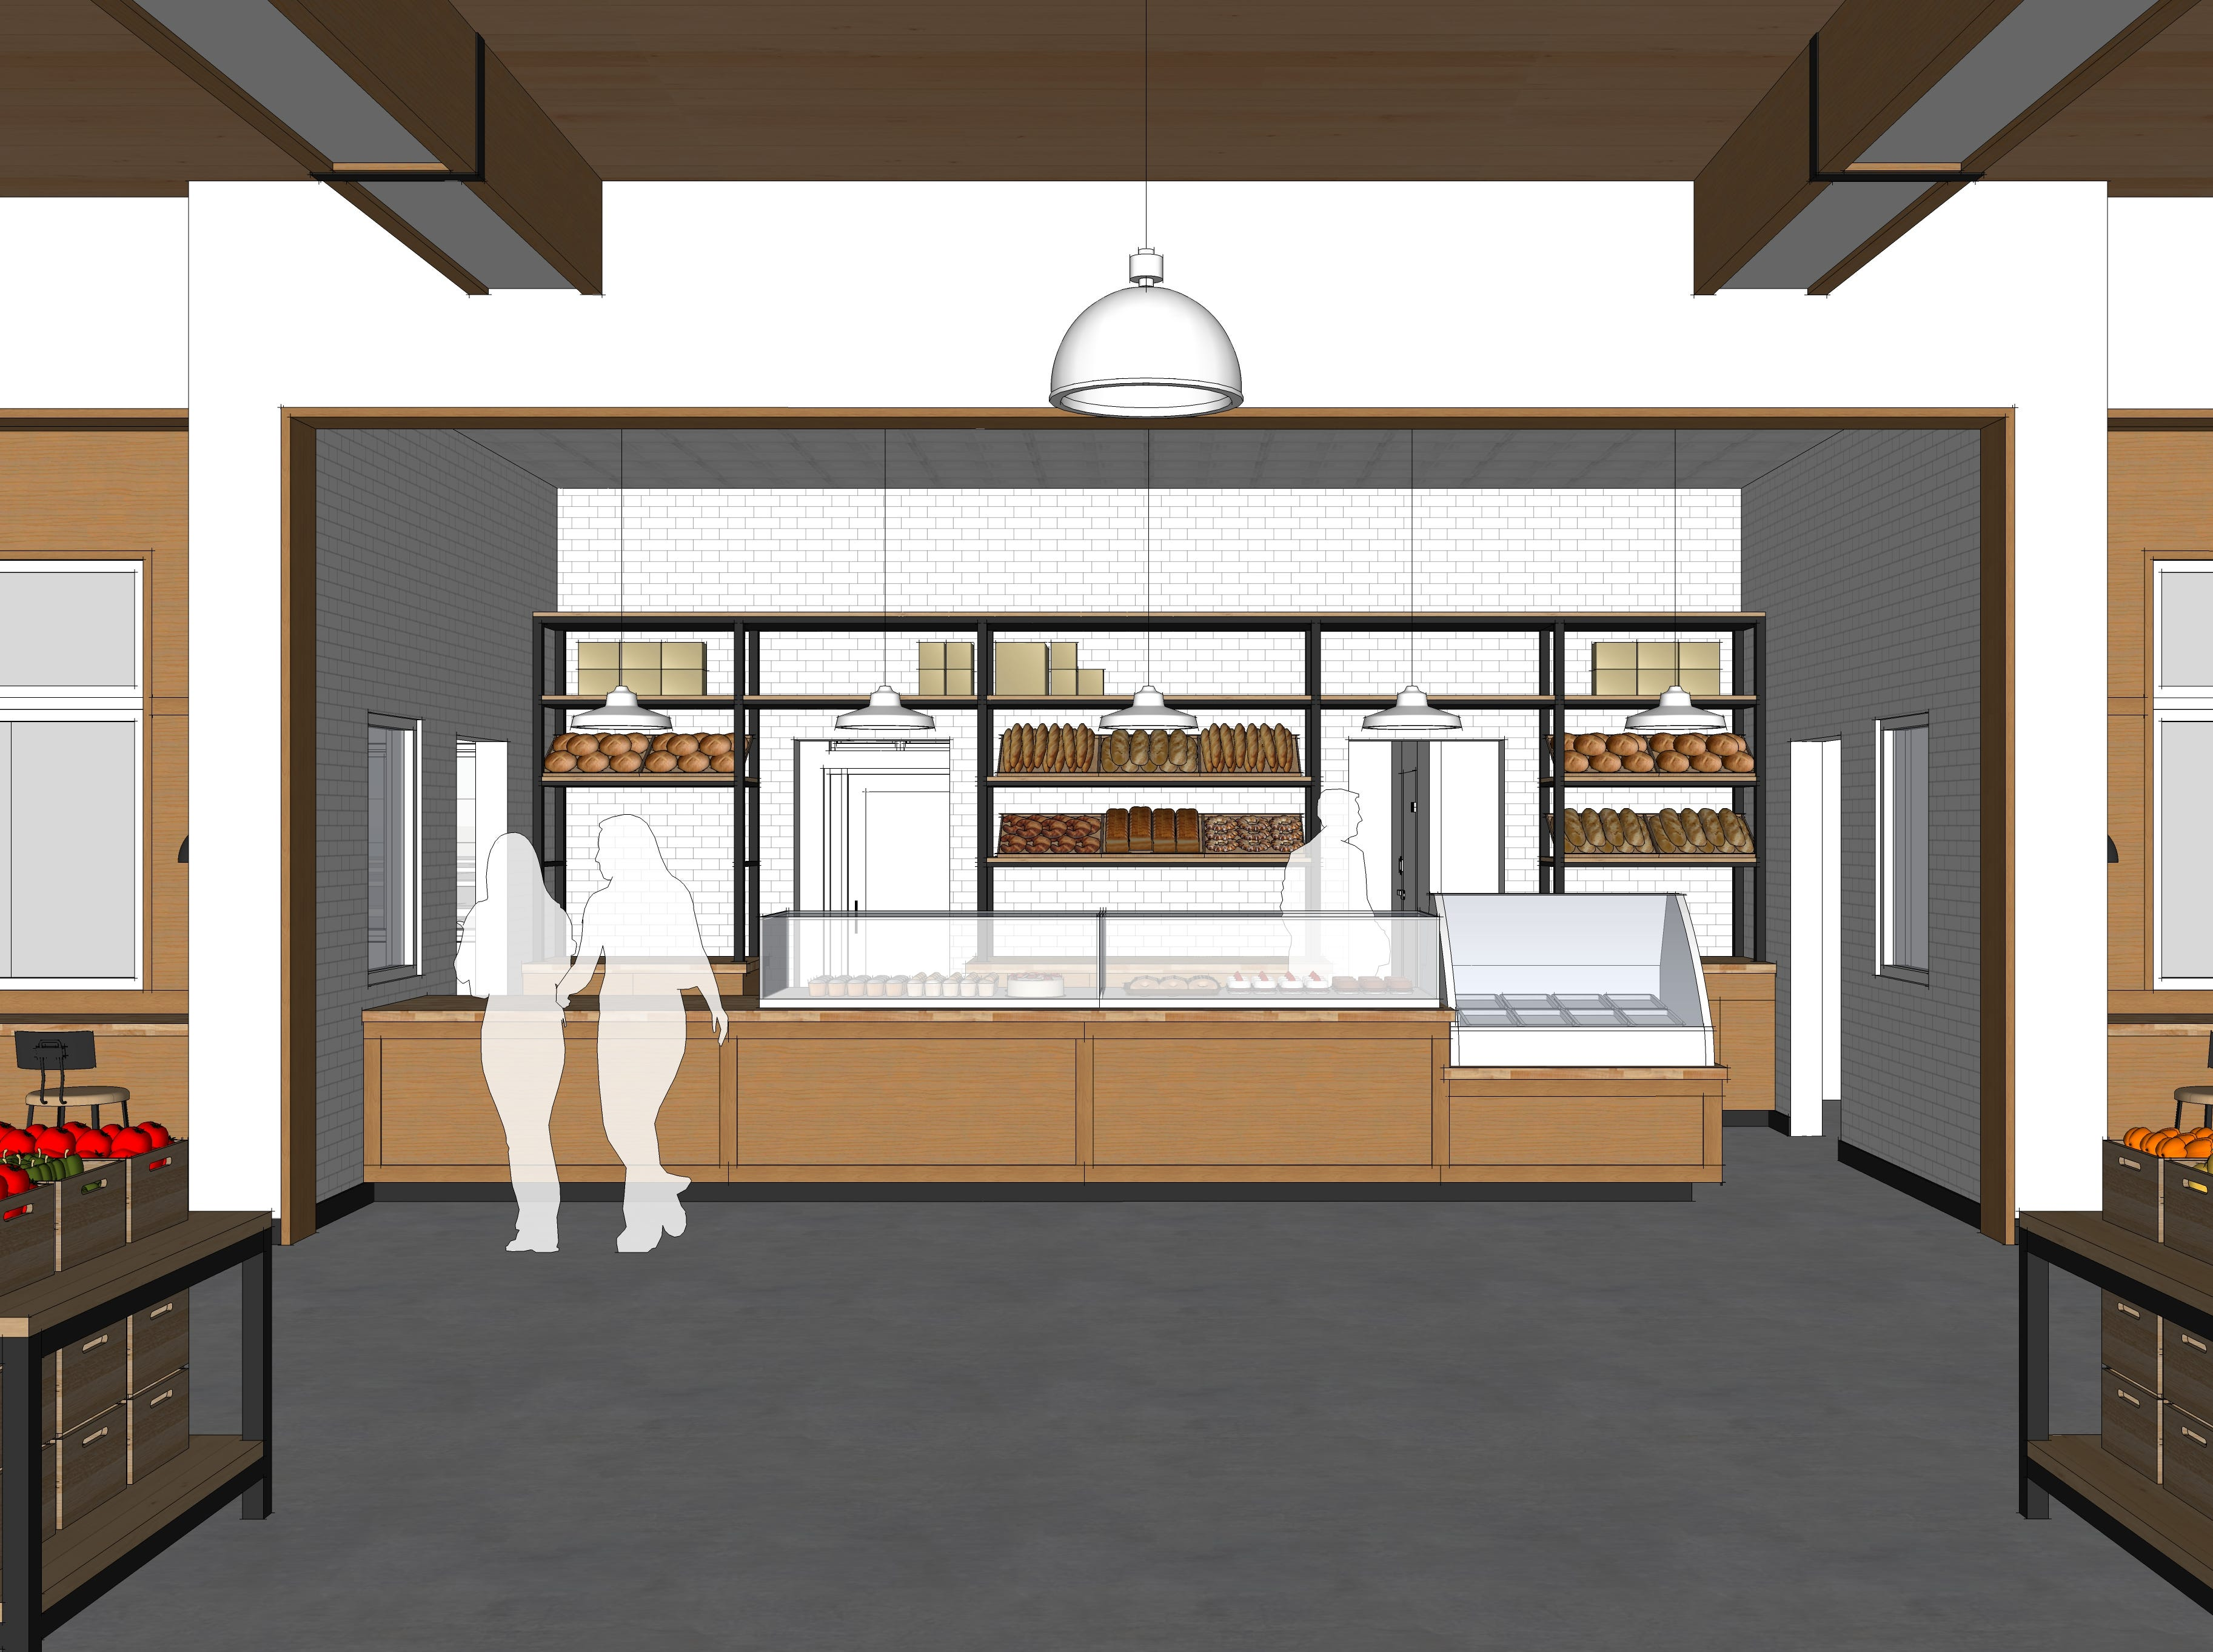 A view of the bakery in this architect rendering of Look's Market's plans for the former C.J. Callaway's in south Sioux Falls.